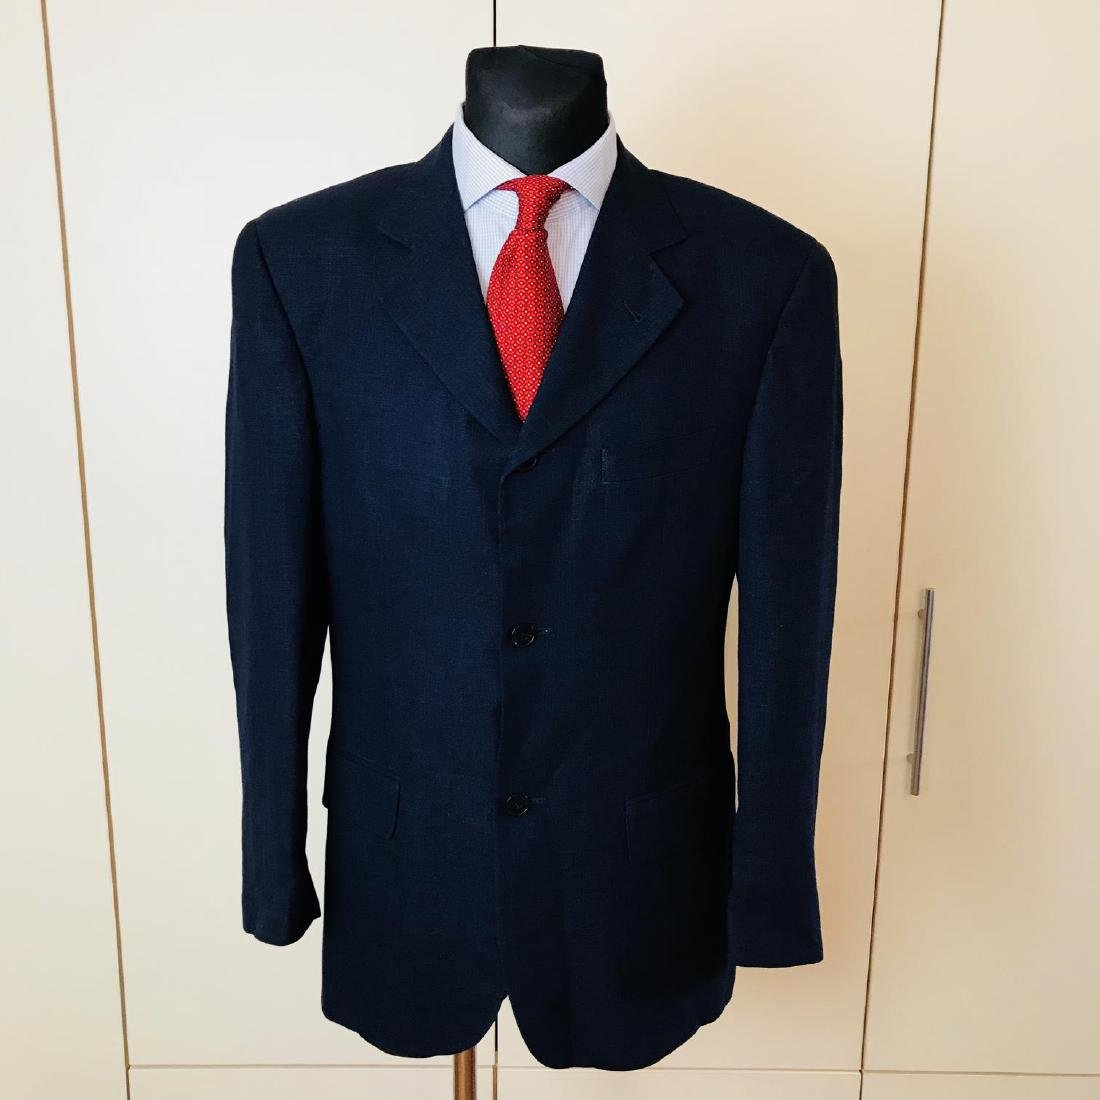 Men's SAND Navy Blue Linen Blend Jacket Blazer Size 38